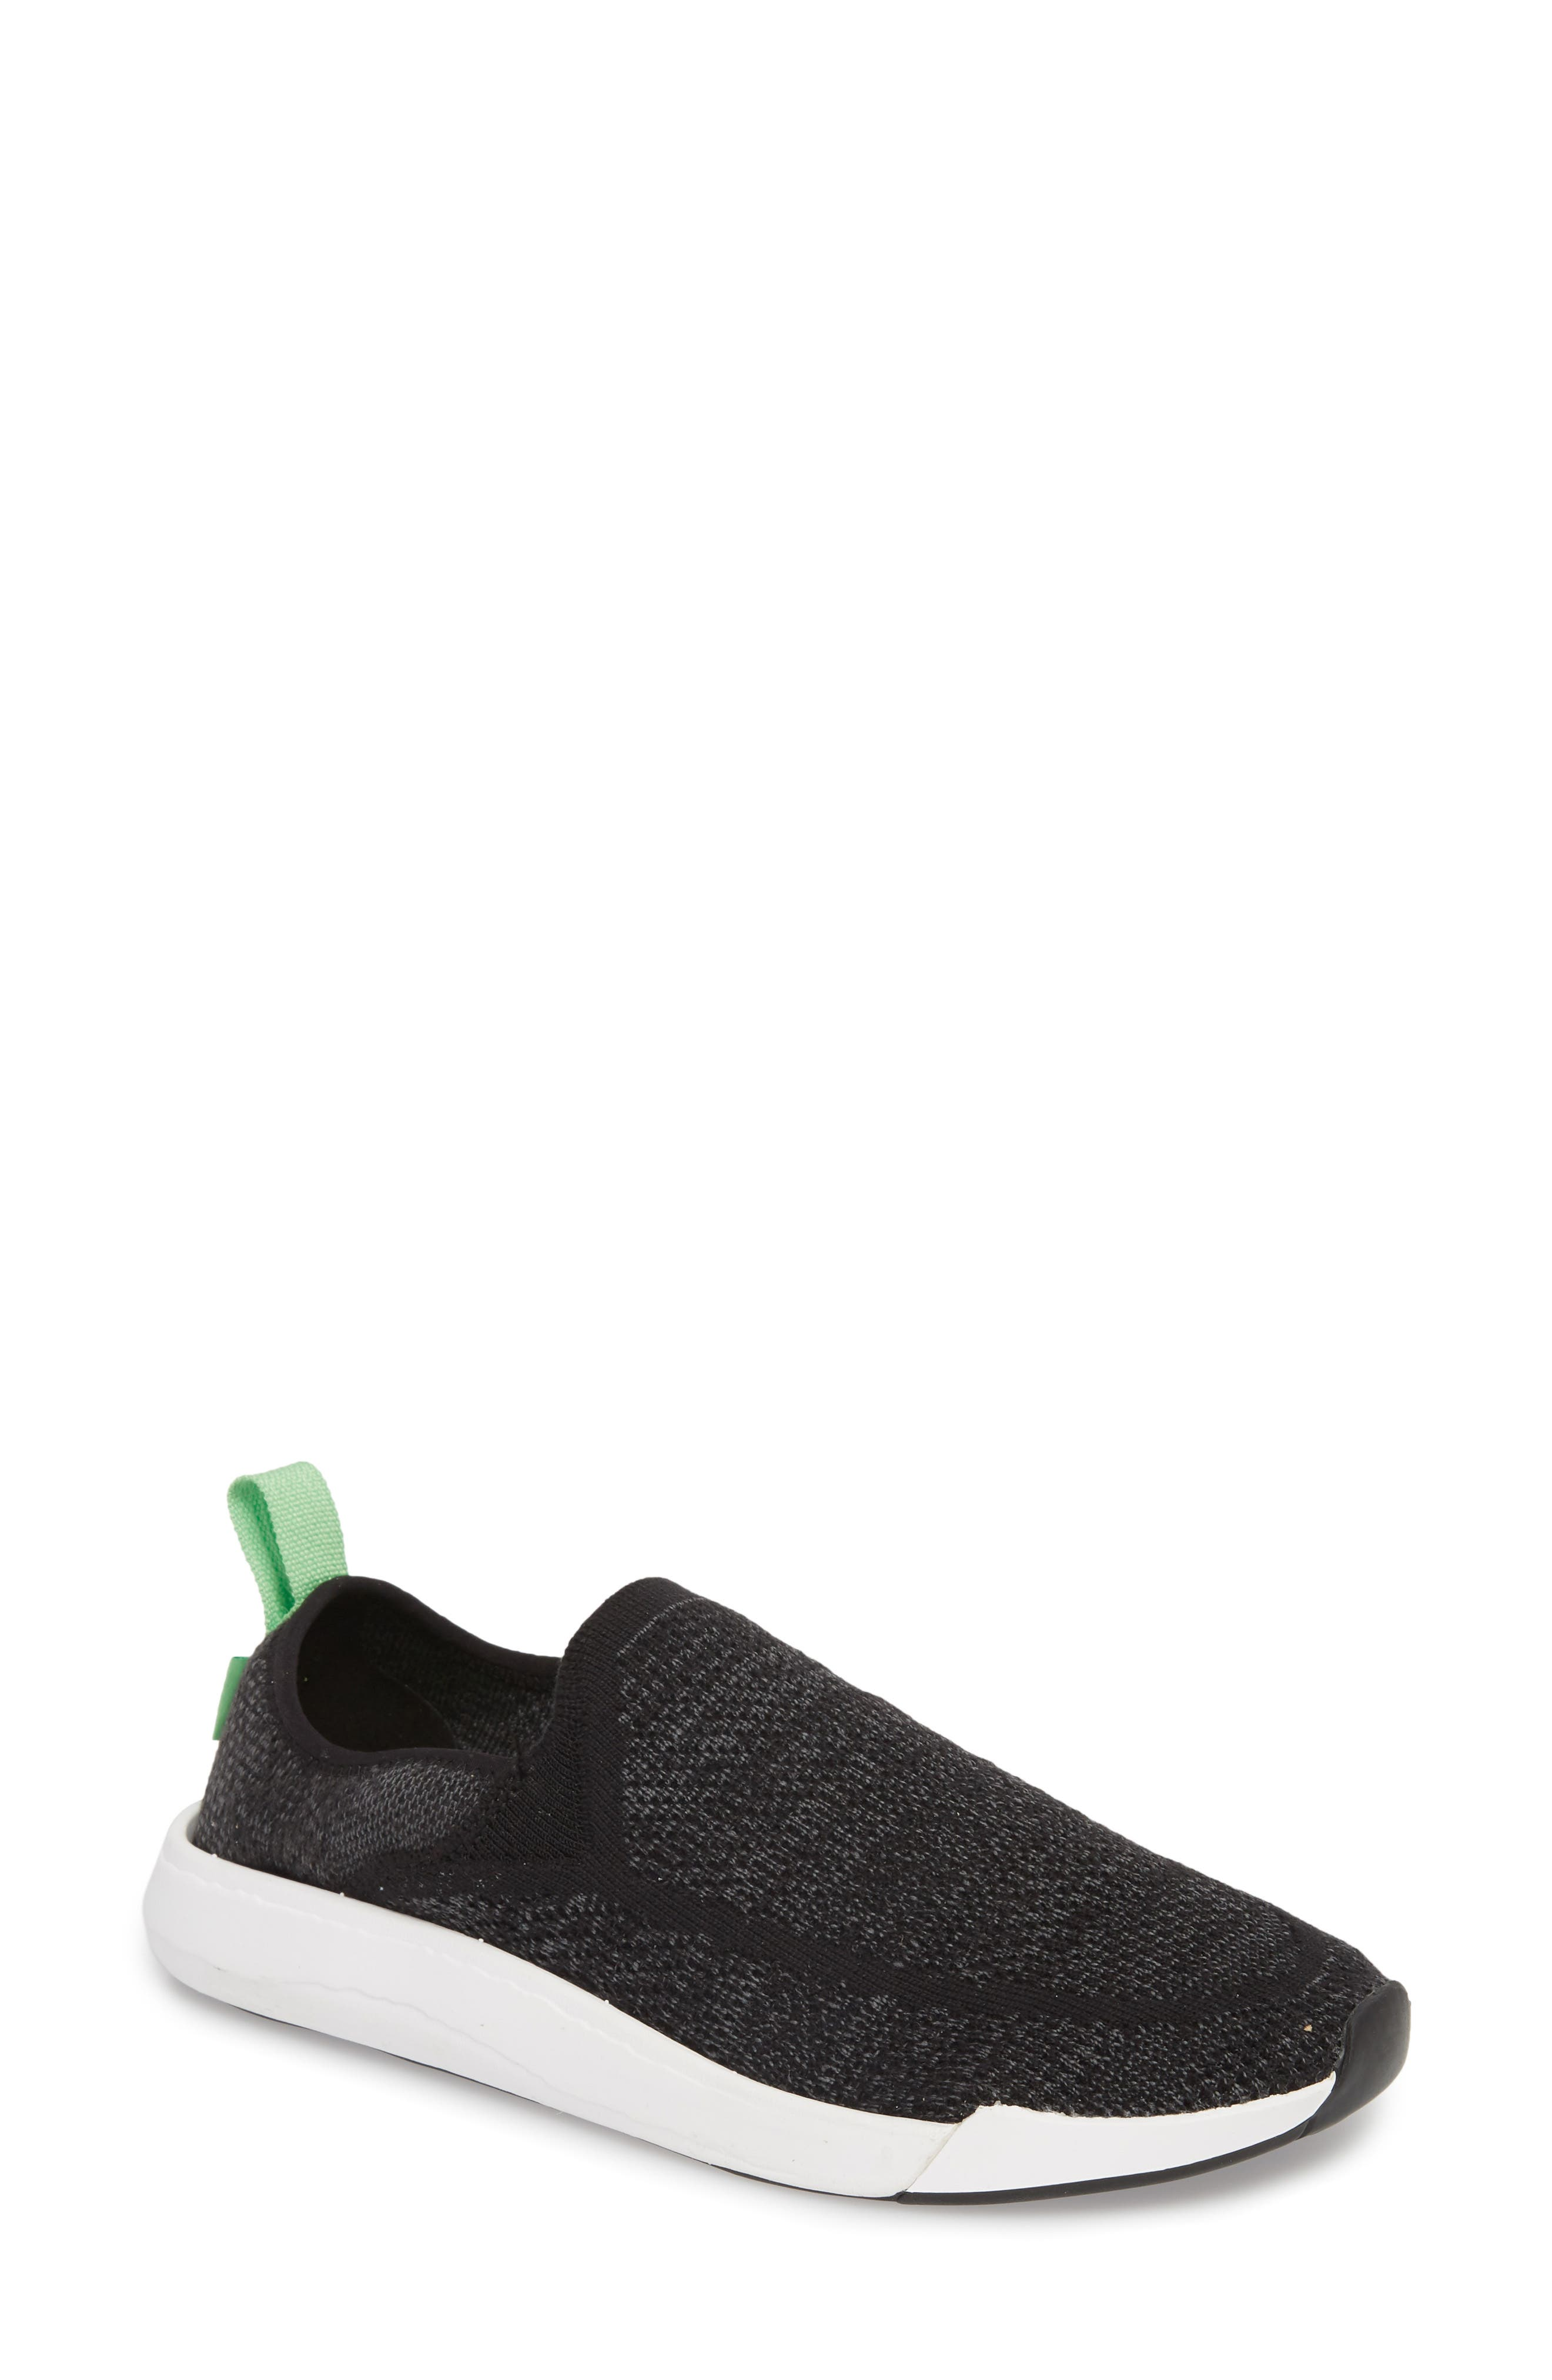 Chiba Quest Knit Slip-On Sneaker,                             Main thumbnail 1, color,                             BLACK